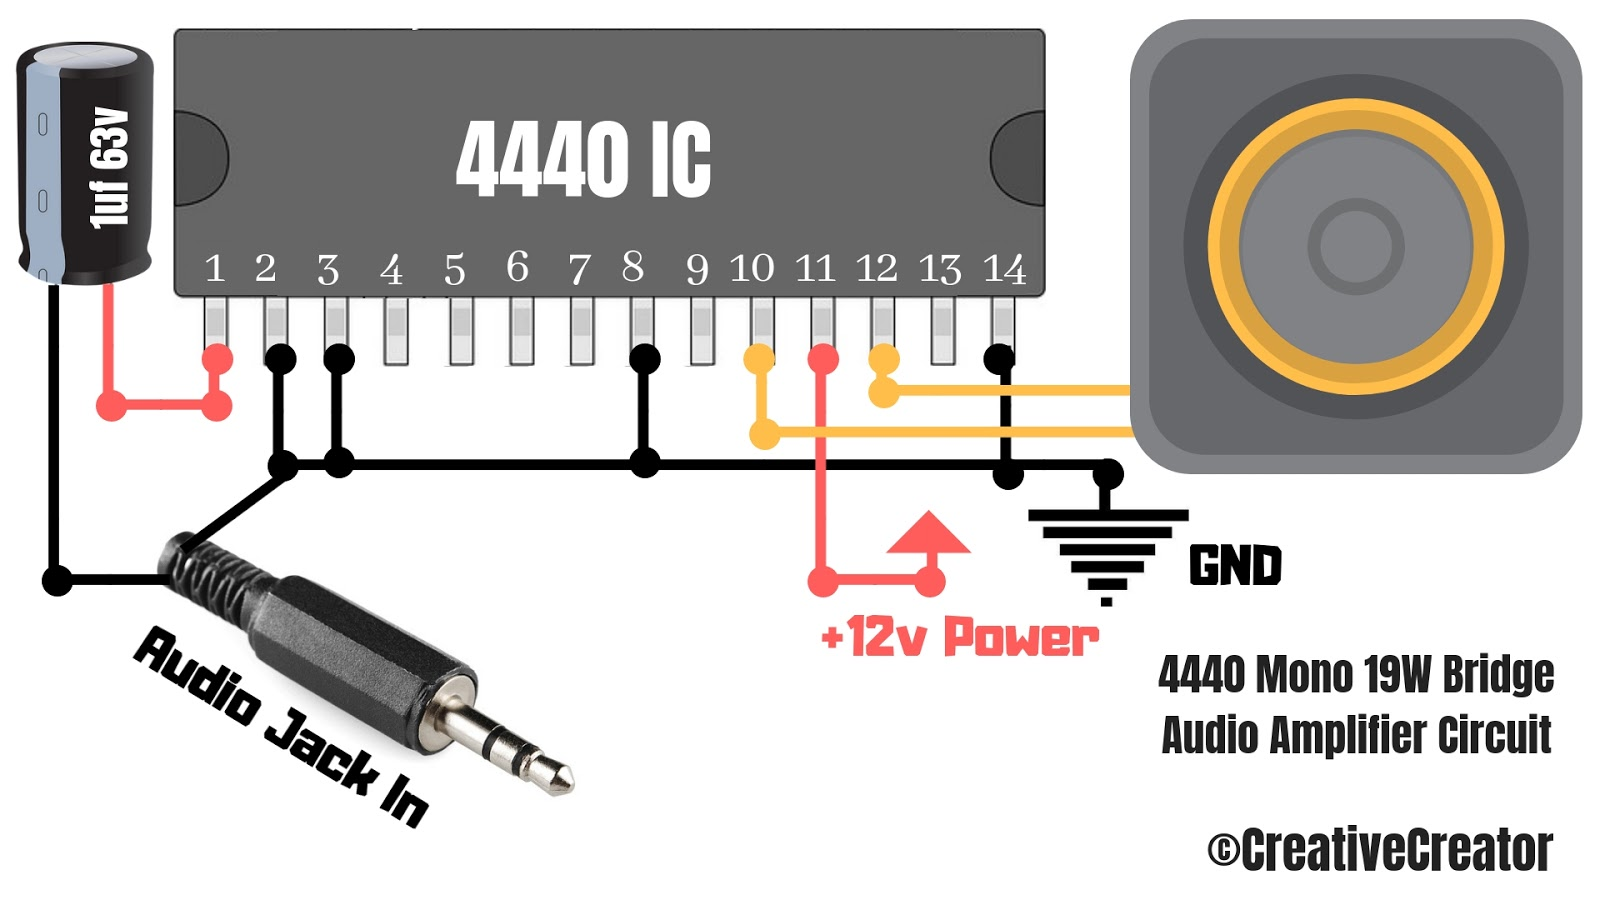 How to make a powerful audio amplifier with 4440 IC? - RevealNew